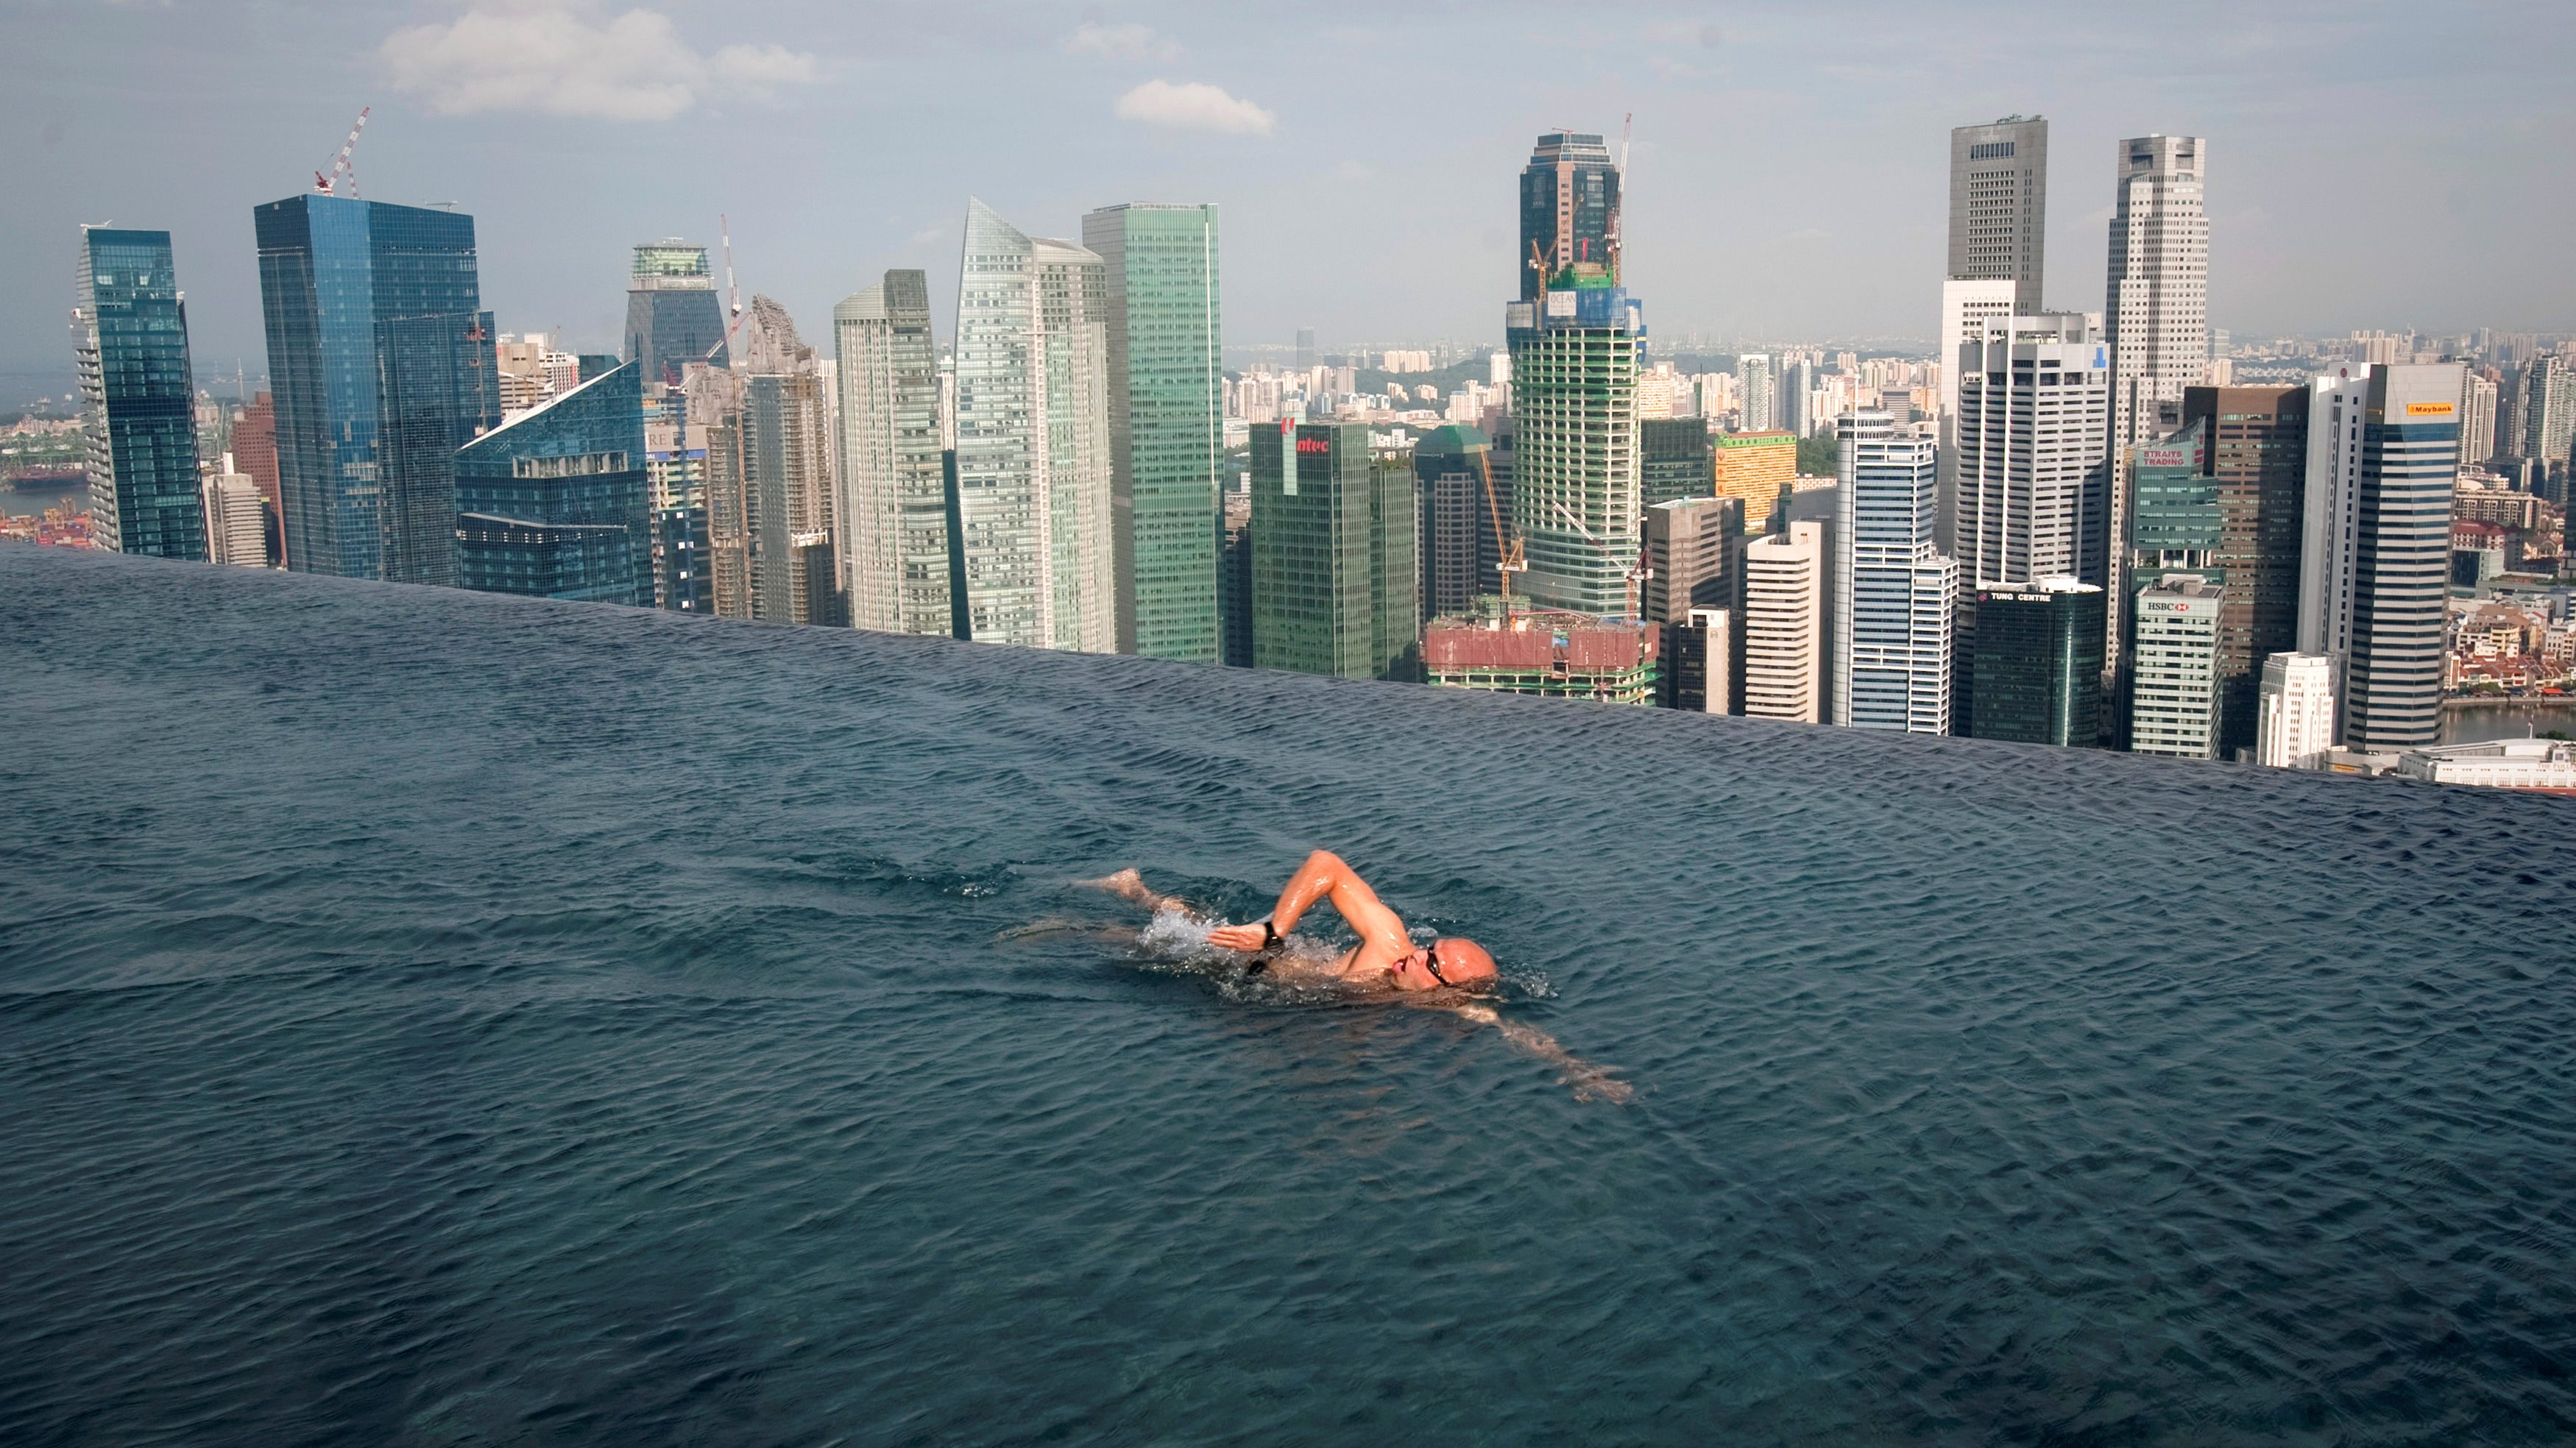 A guest swims in the infinity pool of the Skypark that tops the Marina Bay Sands hotel towers in Singapore June 24, 2010.